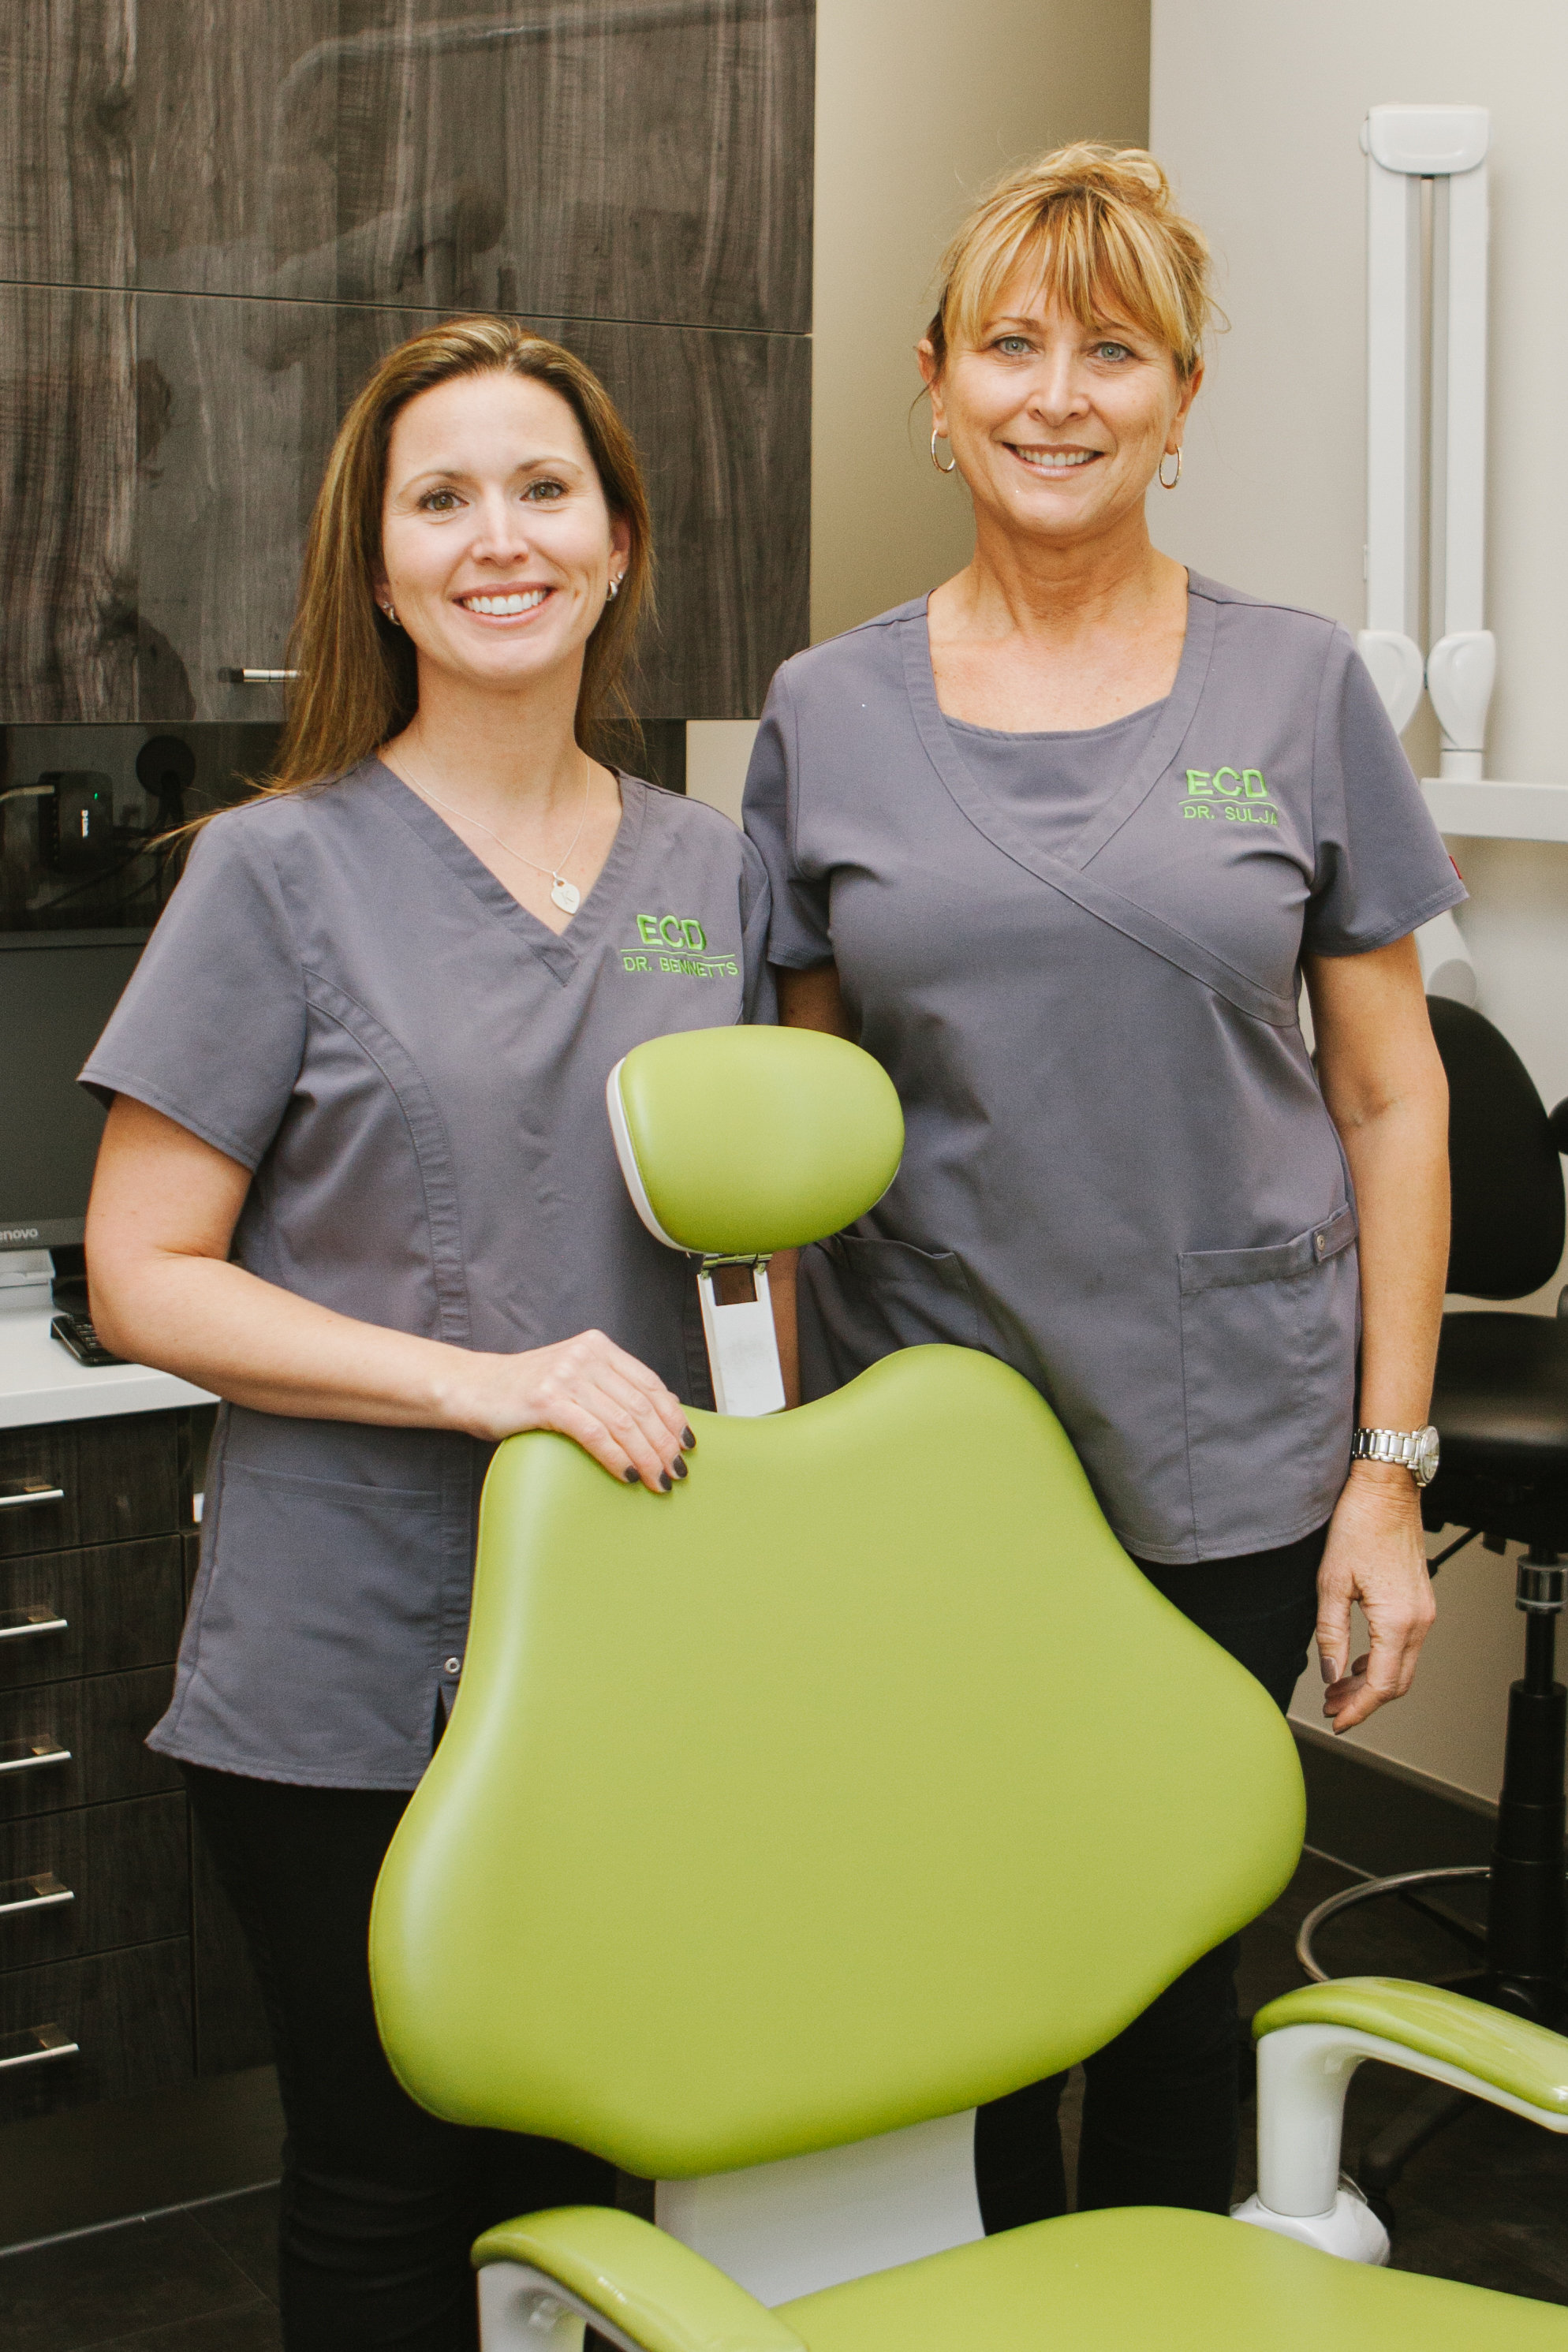 Left to right: Dr. Koren Bennetts & Dr. Verona Sulja (Photo by Tracey Allison Photography)